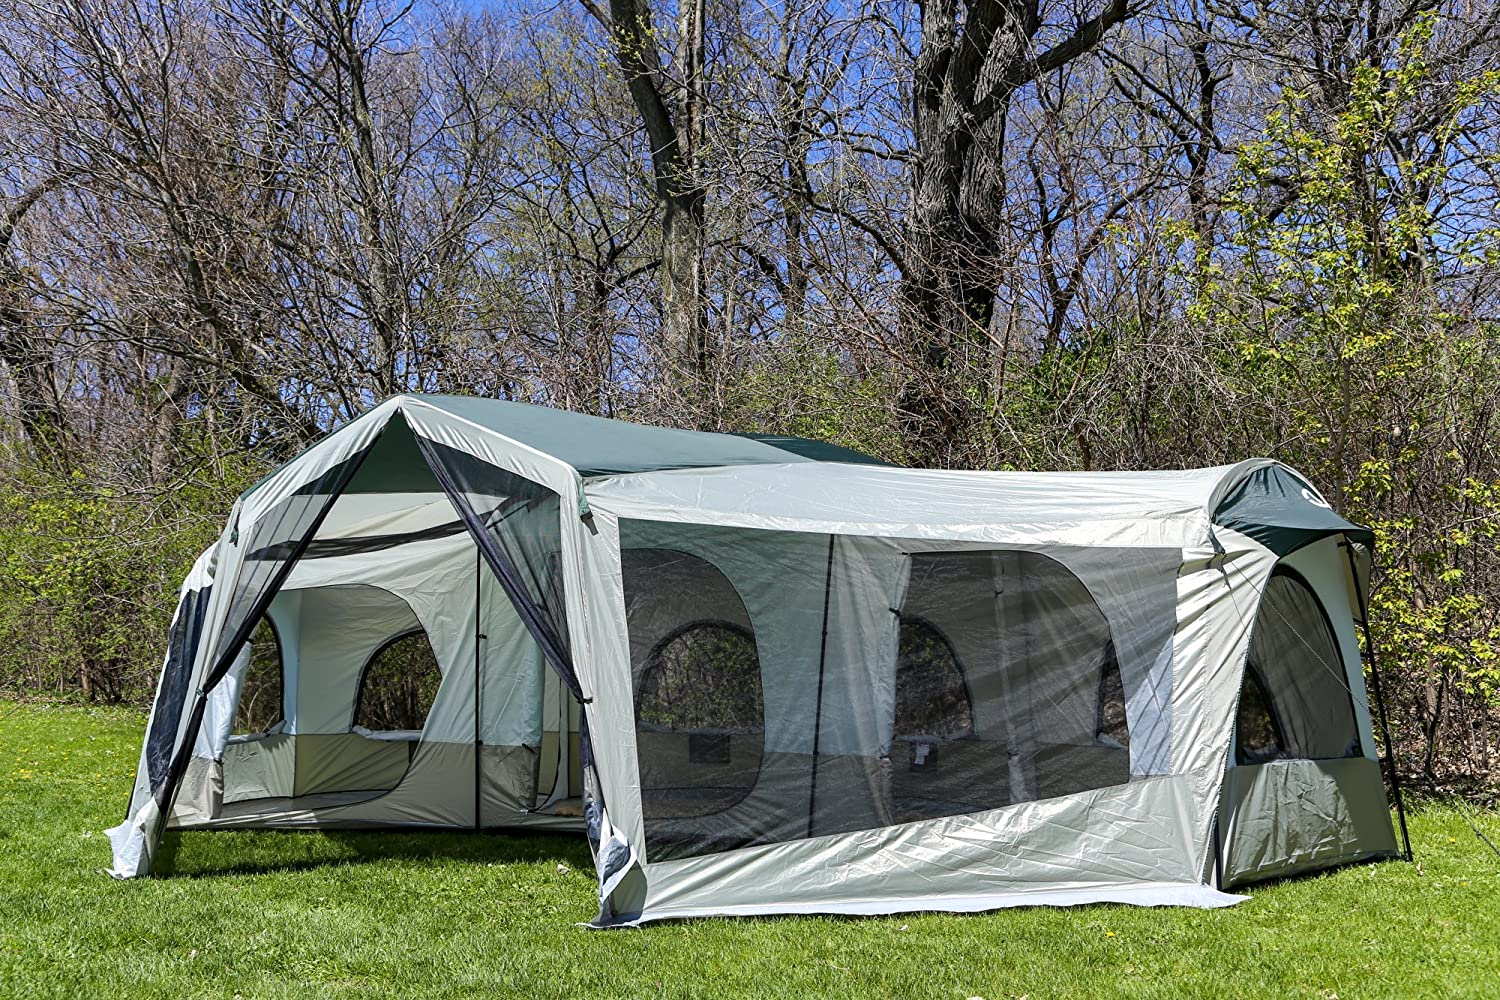 Merveilleux Amazon.com : Tahoe Gear Carson 3 Season 14 Person Large Family Cabin Tent |  TGT CARSON 18 : Sports U0026 Outdoors